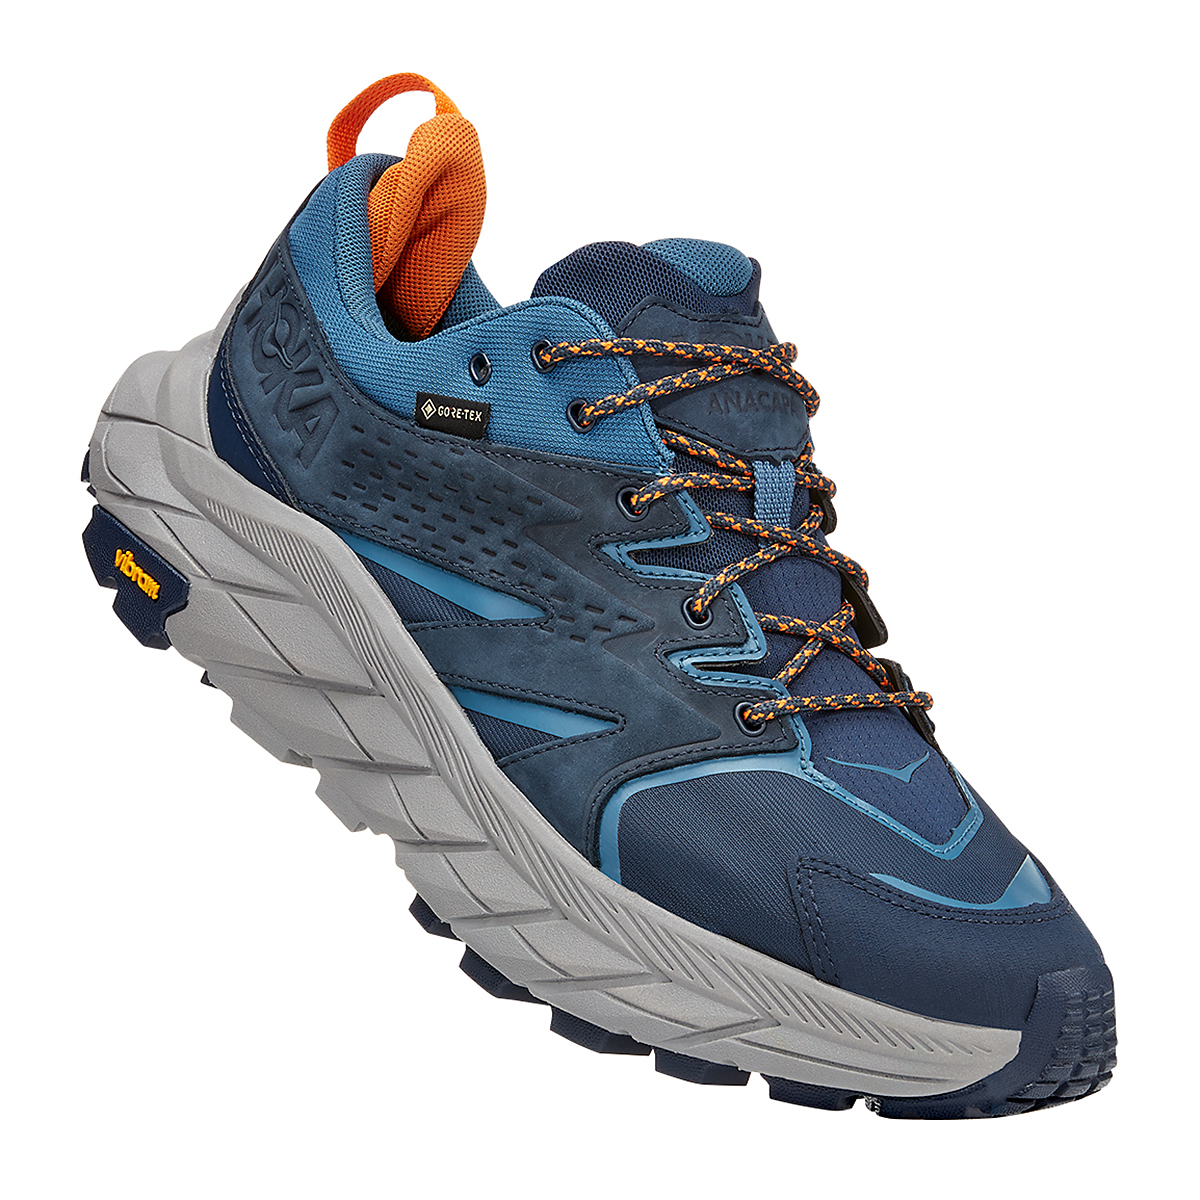 Men's Hoka One One Anacapa Low Gore-Tex Trail Running Shoe - Color: Outer Space/Real Teal - Size: 7 - Width: Regular, Outer Space/Real Teal, large, image 2